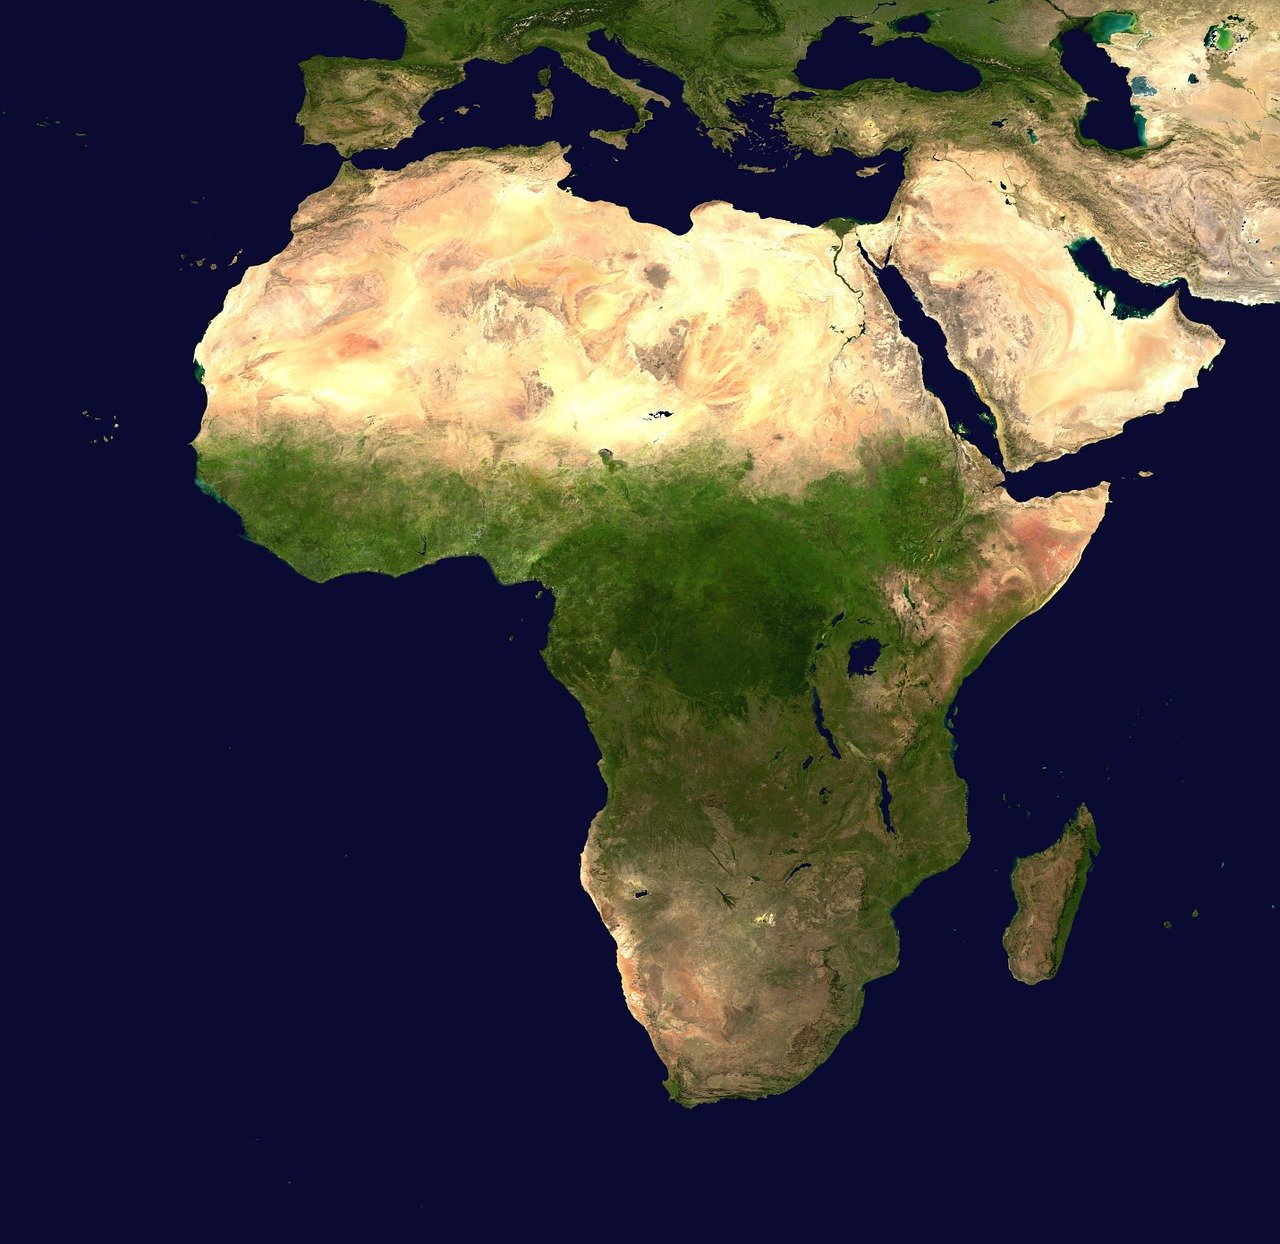 which is the largest continent in the world africa